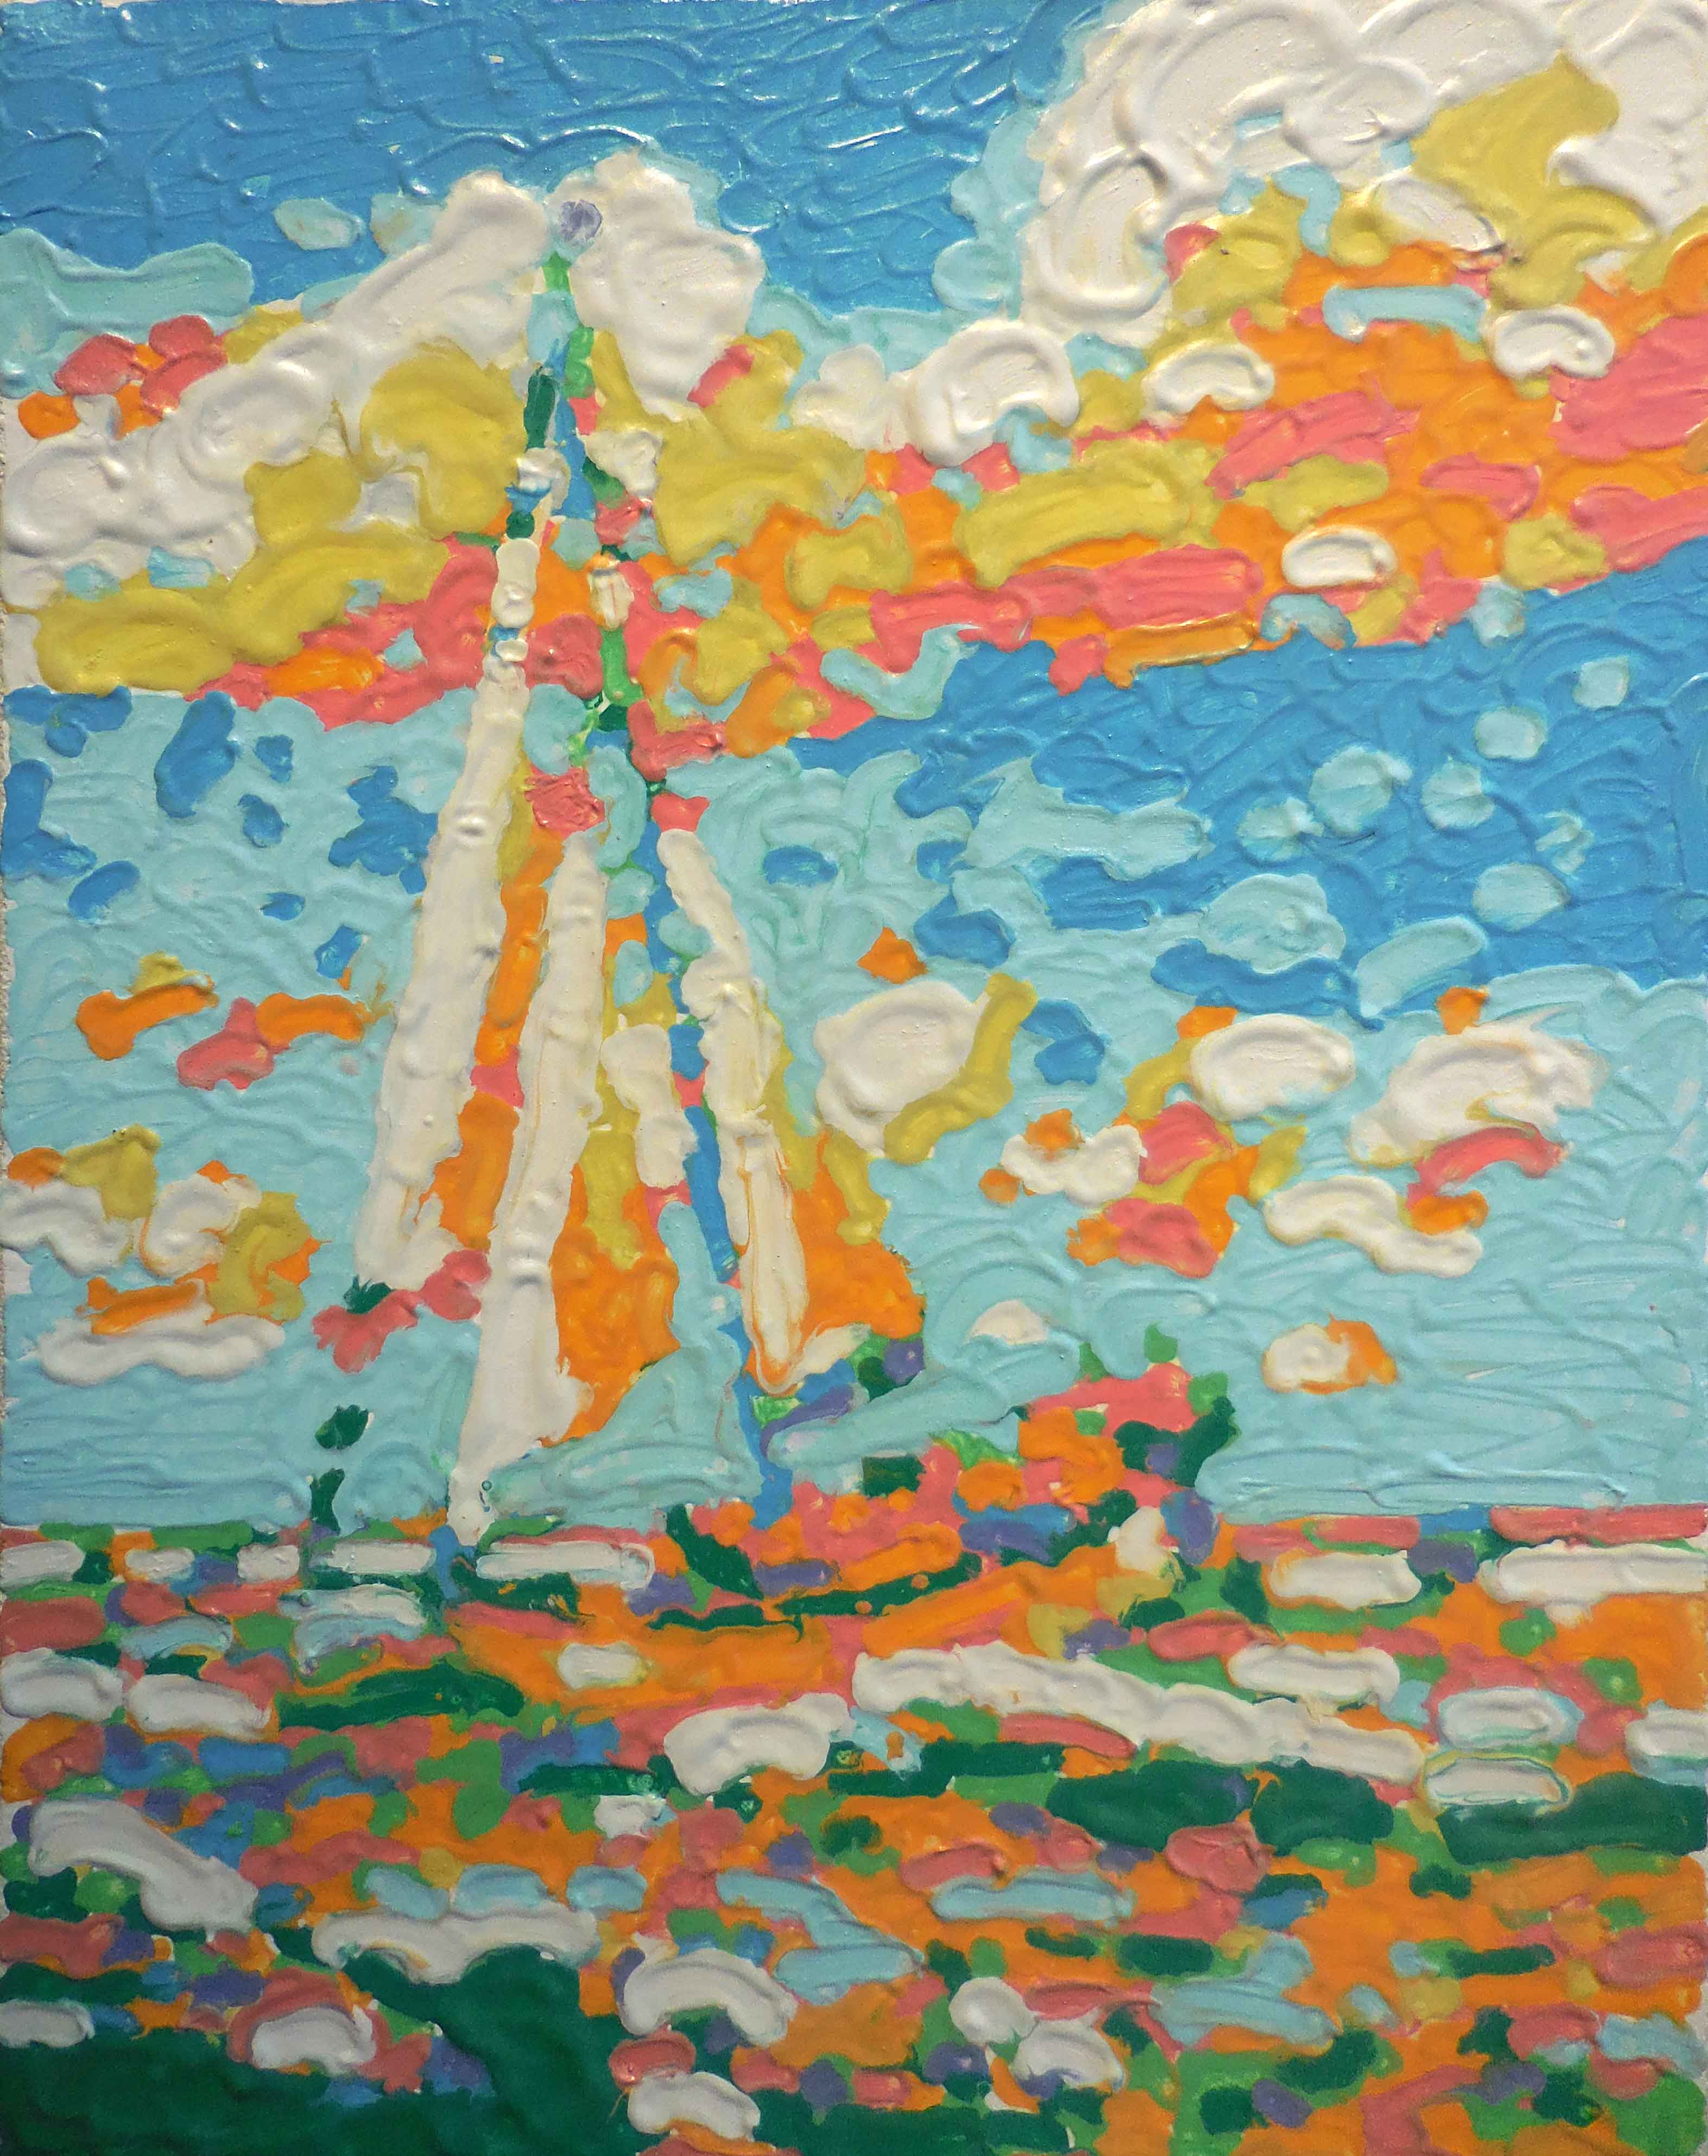 Oil pastel melted on canvas of sailboat by tom lohre